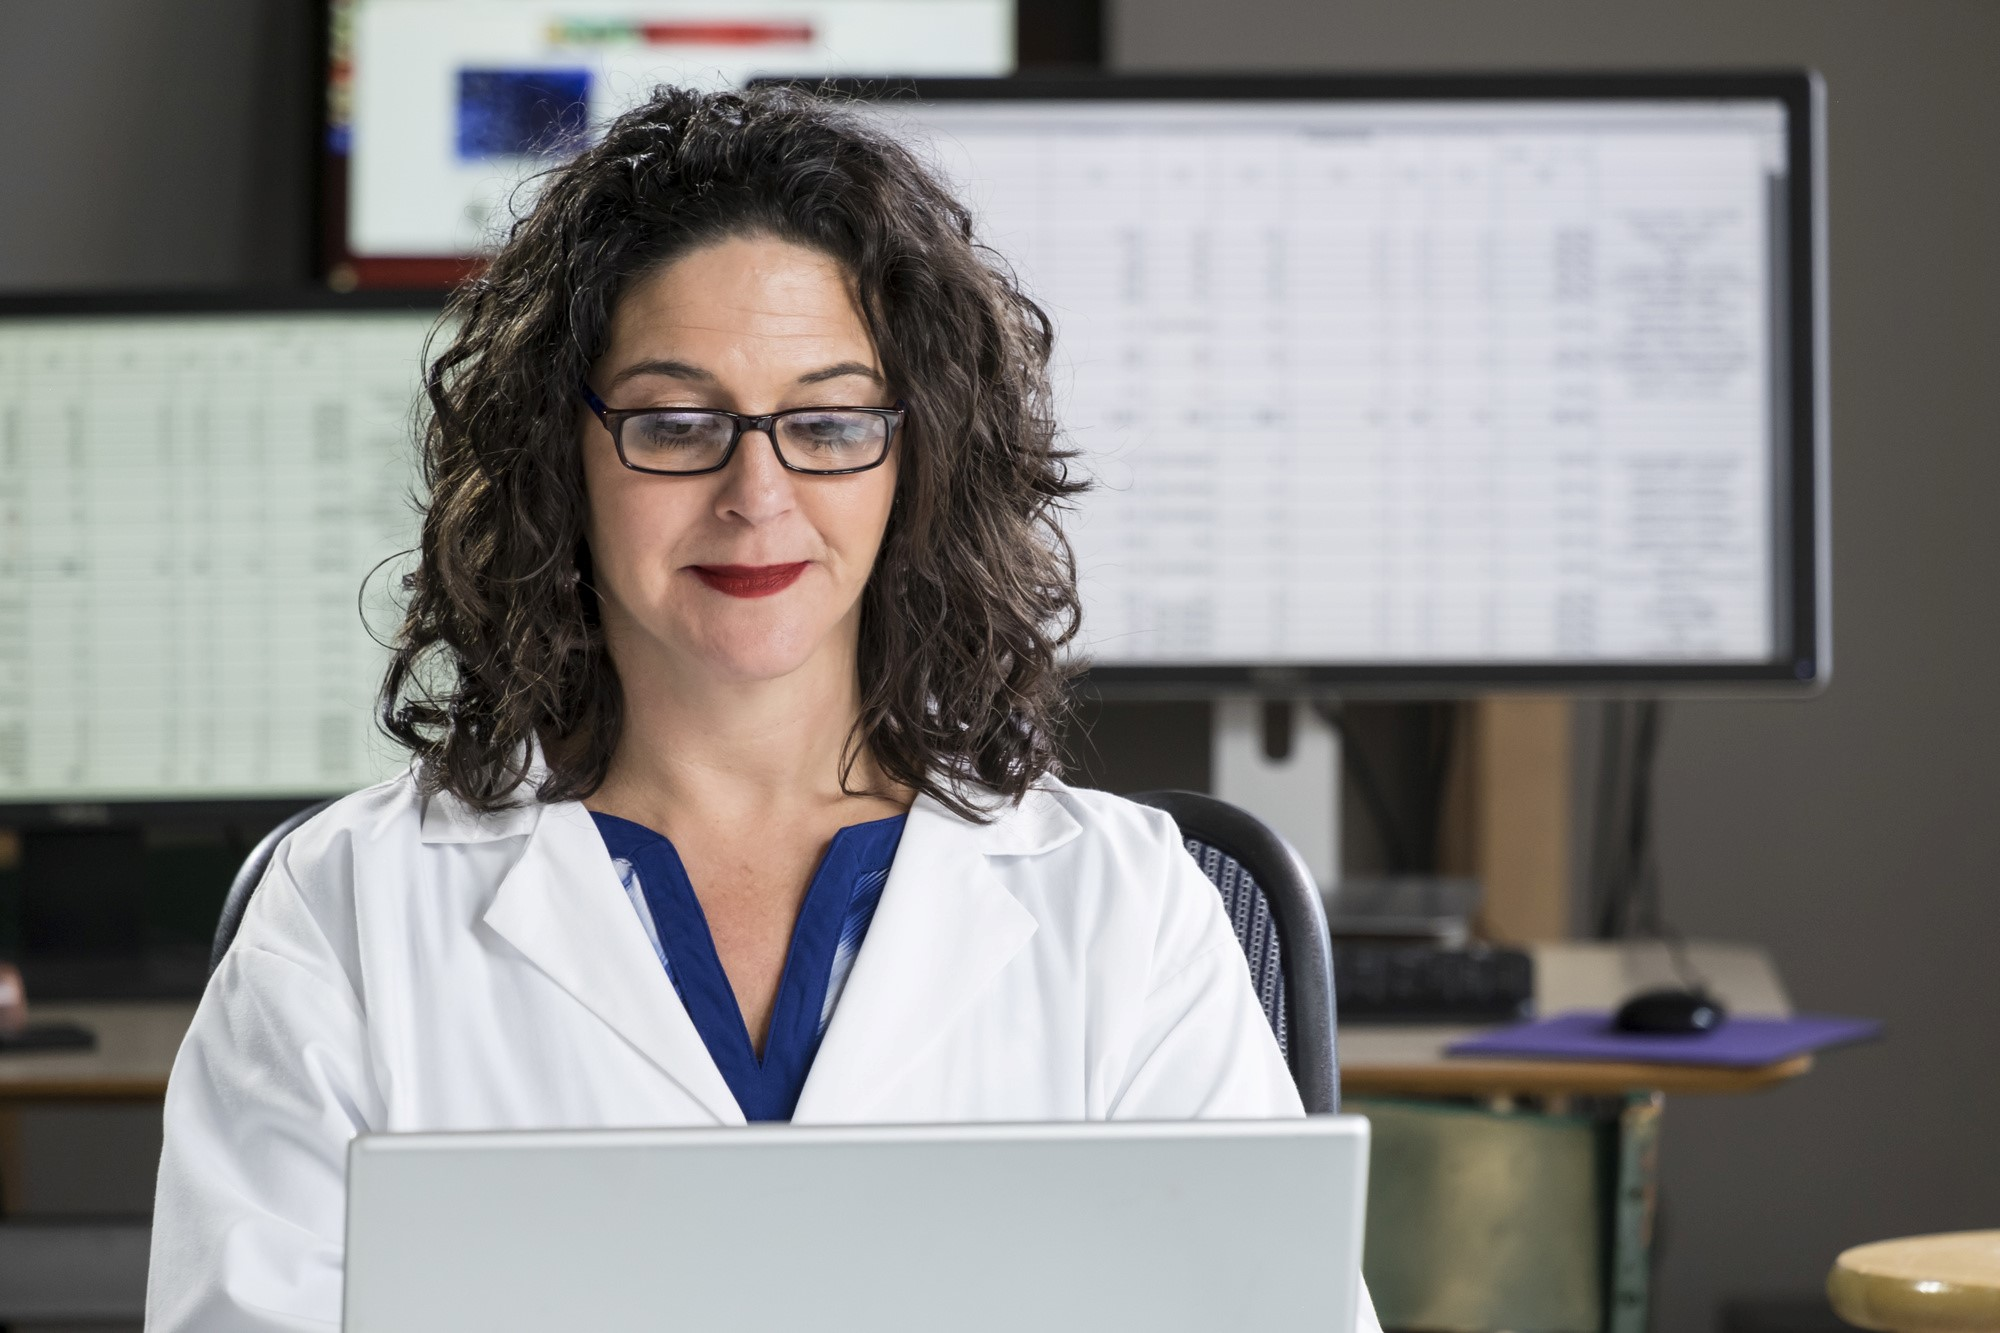 5 Helpful Tips for Starting a Medical Coding Career